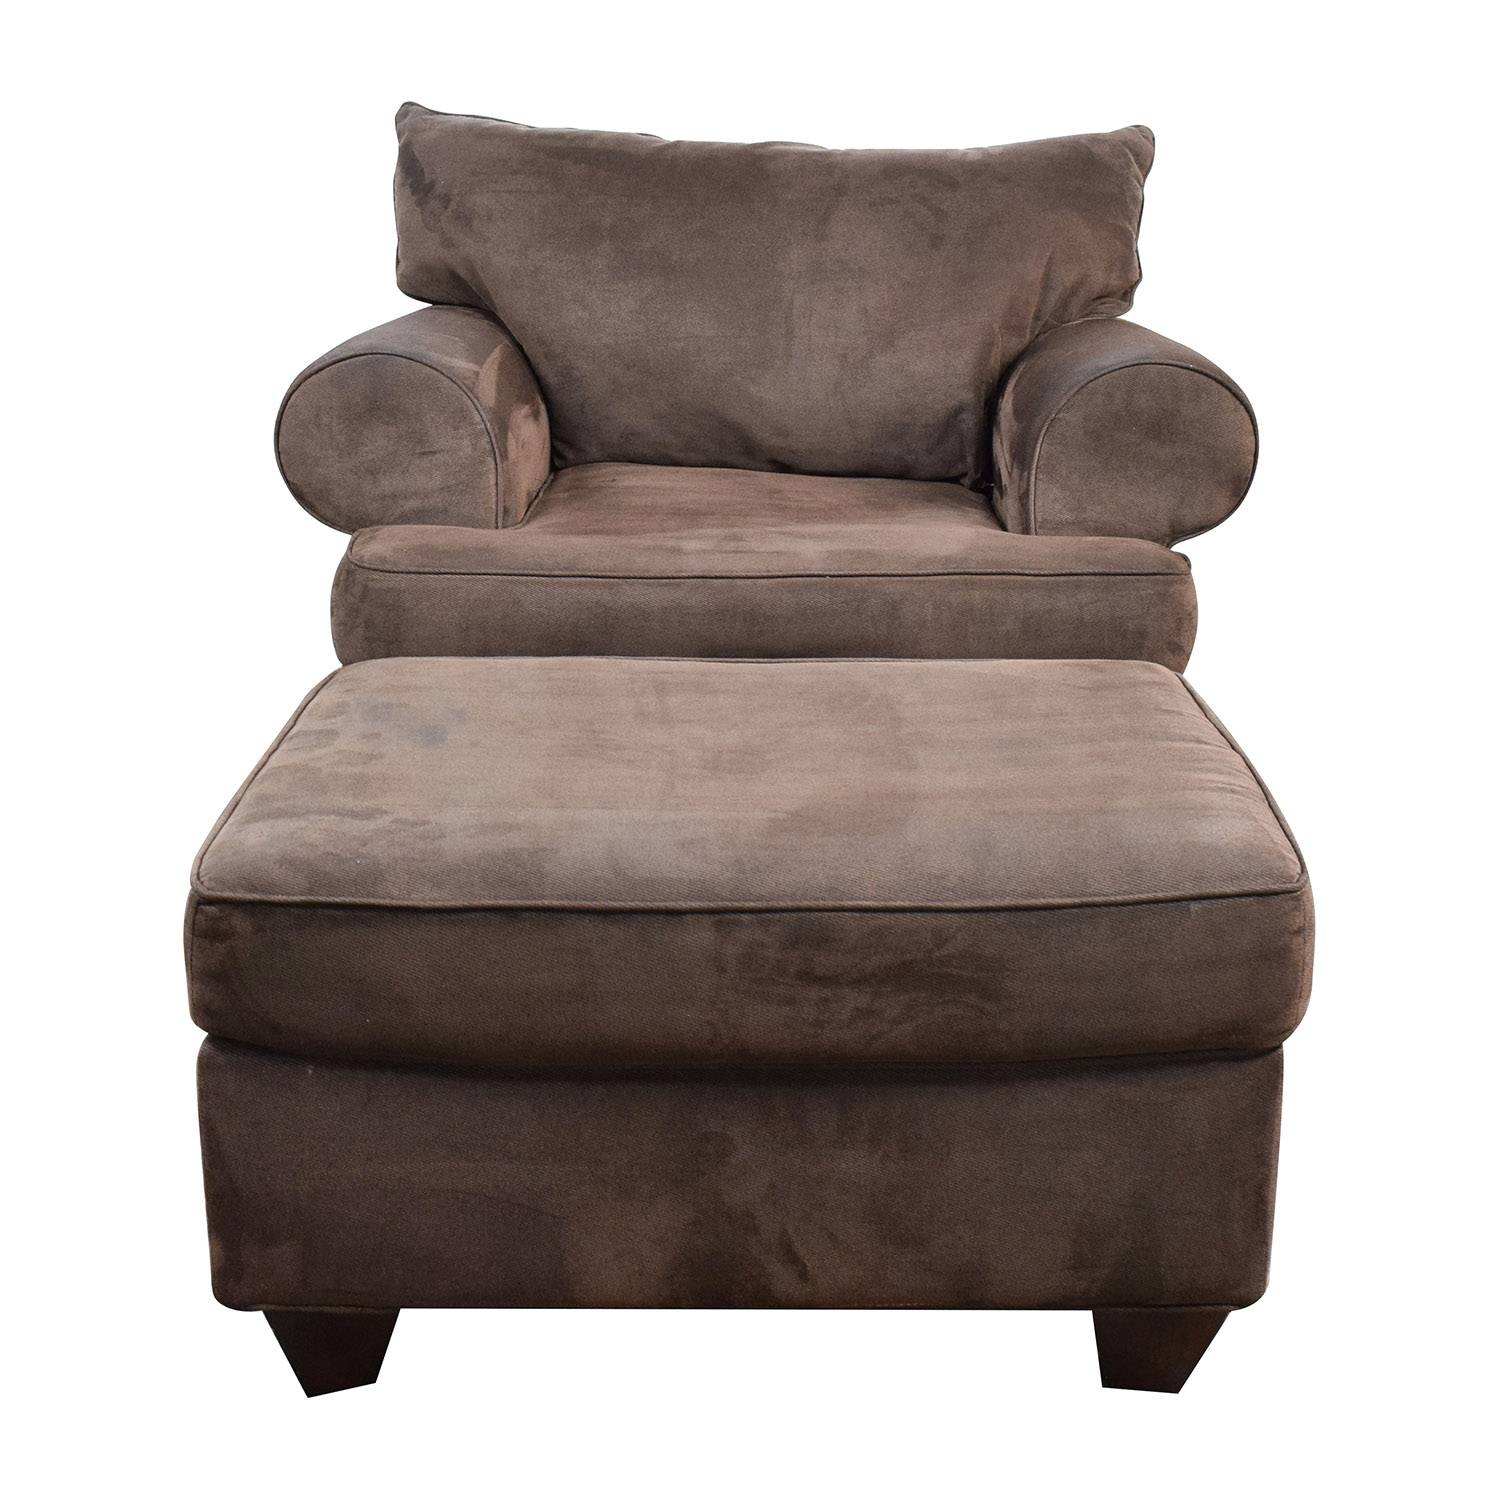 67% Off - Dark Brown Sofa Chair With Ottoman / Chairs with regard to Brown Sofa Chairs (Image 4 of 15)